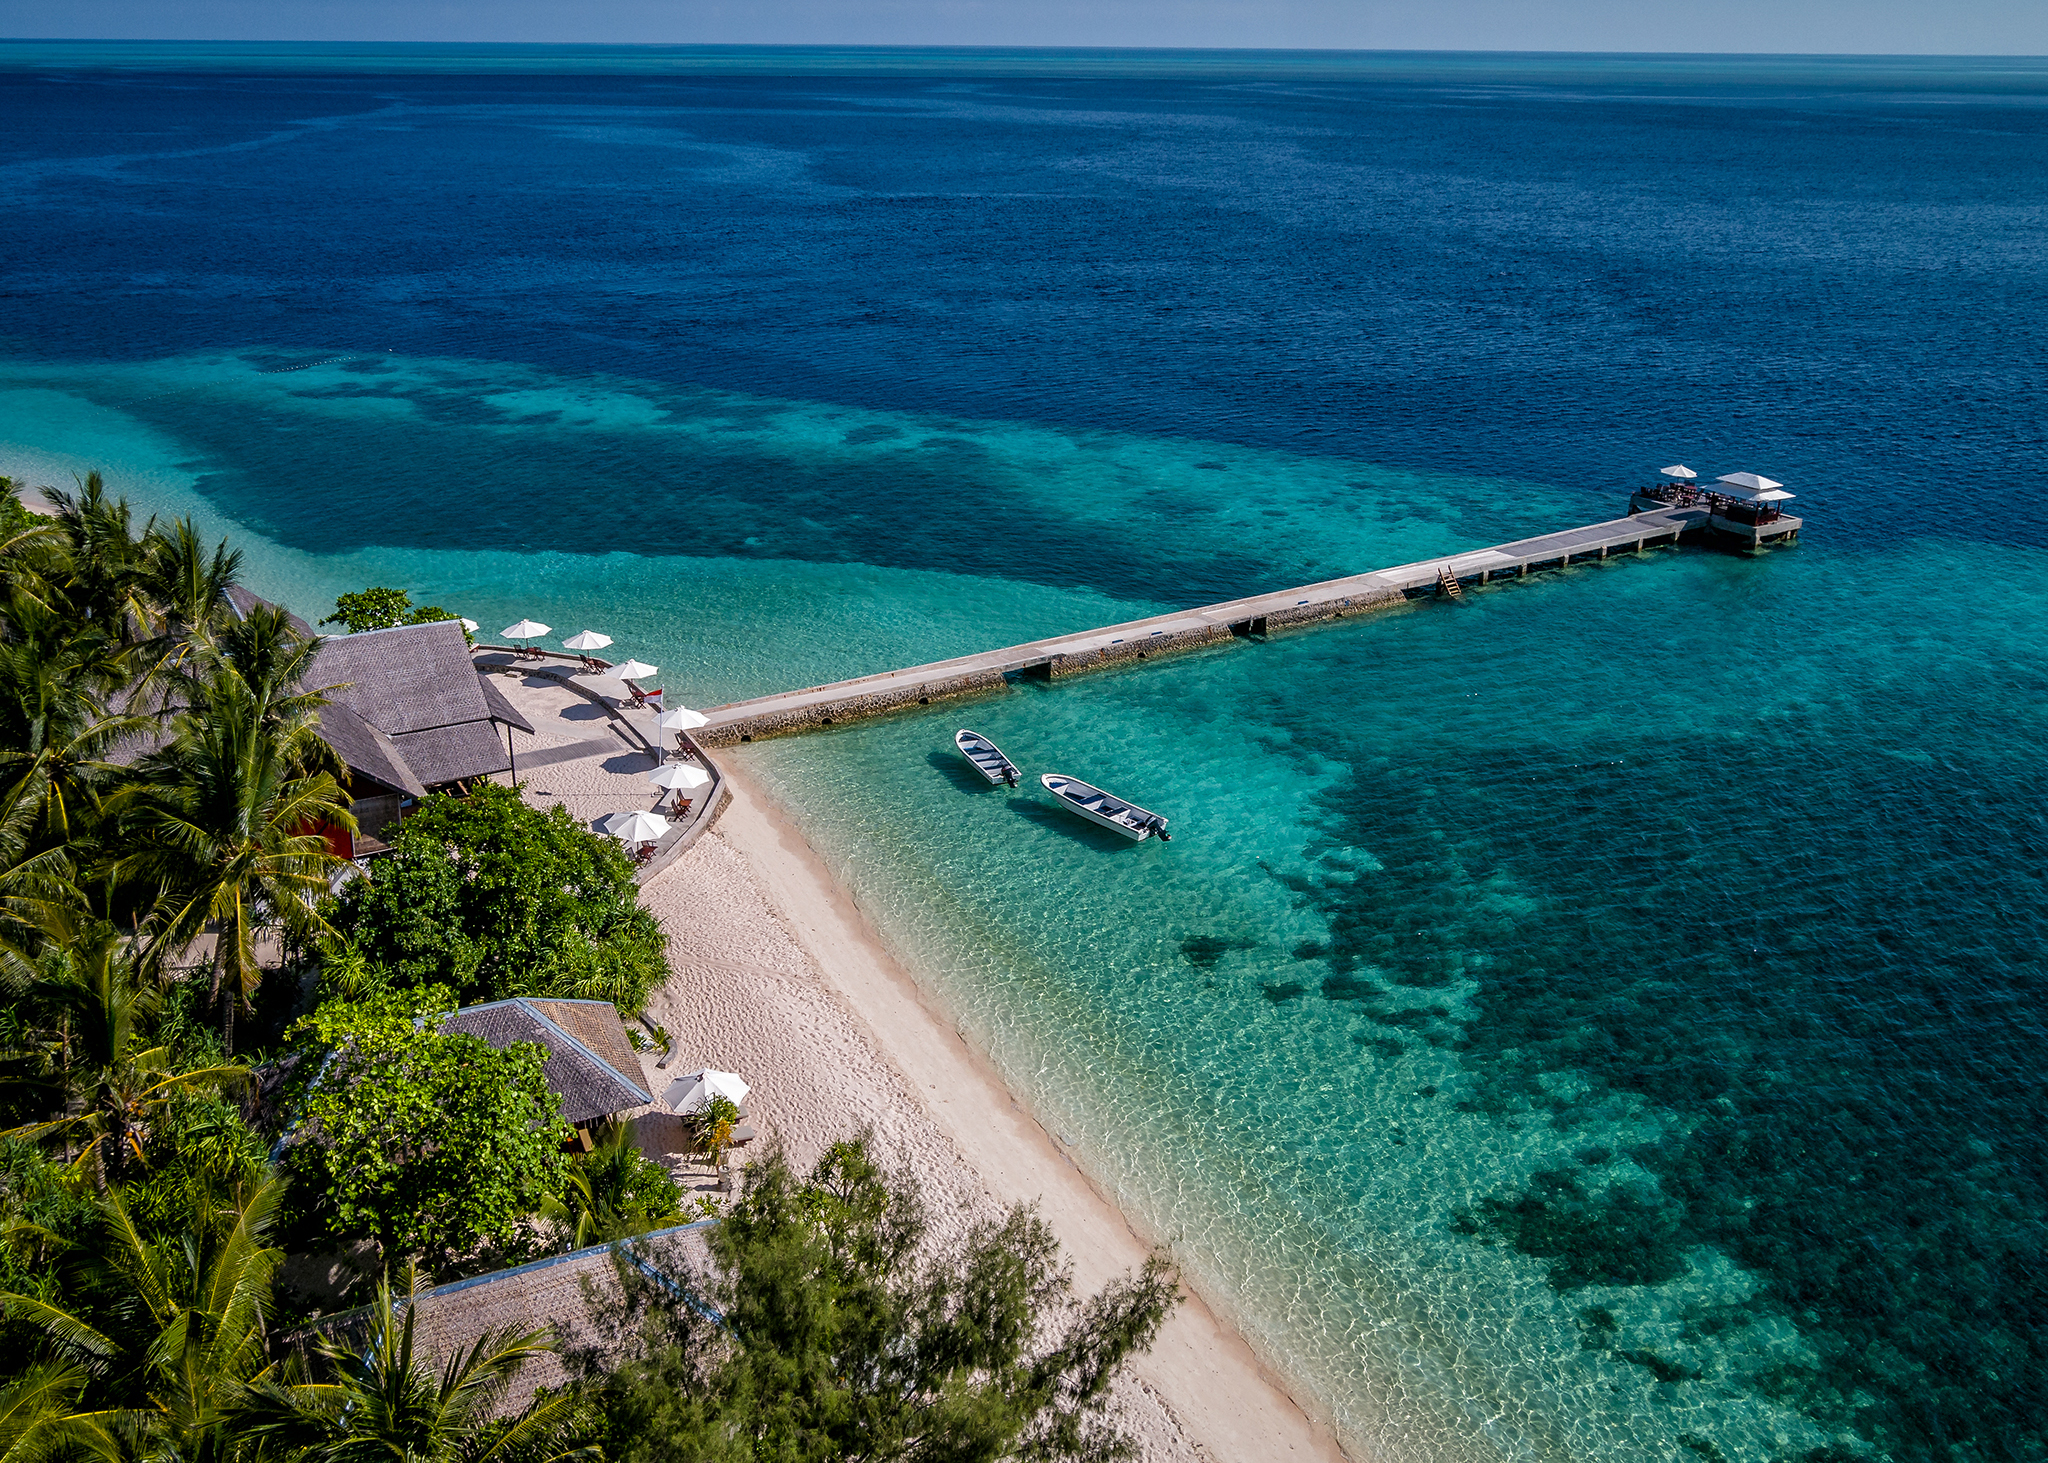 """""""I look forward to the simplicity of walking barefoot in the soft Wakatobi sand and gazing out at the most incredible House Reef on the planet,"""" says guest Rick McCawley."""